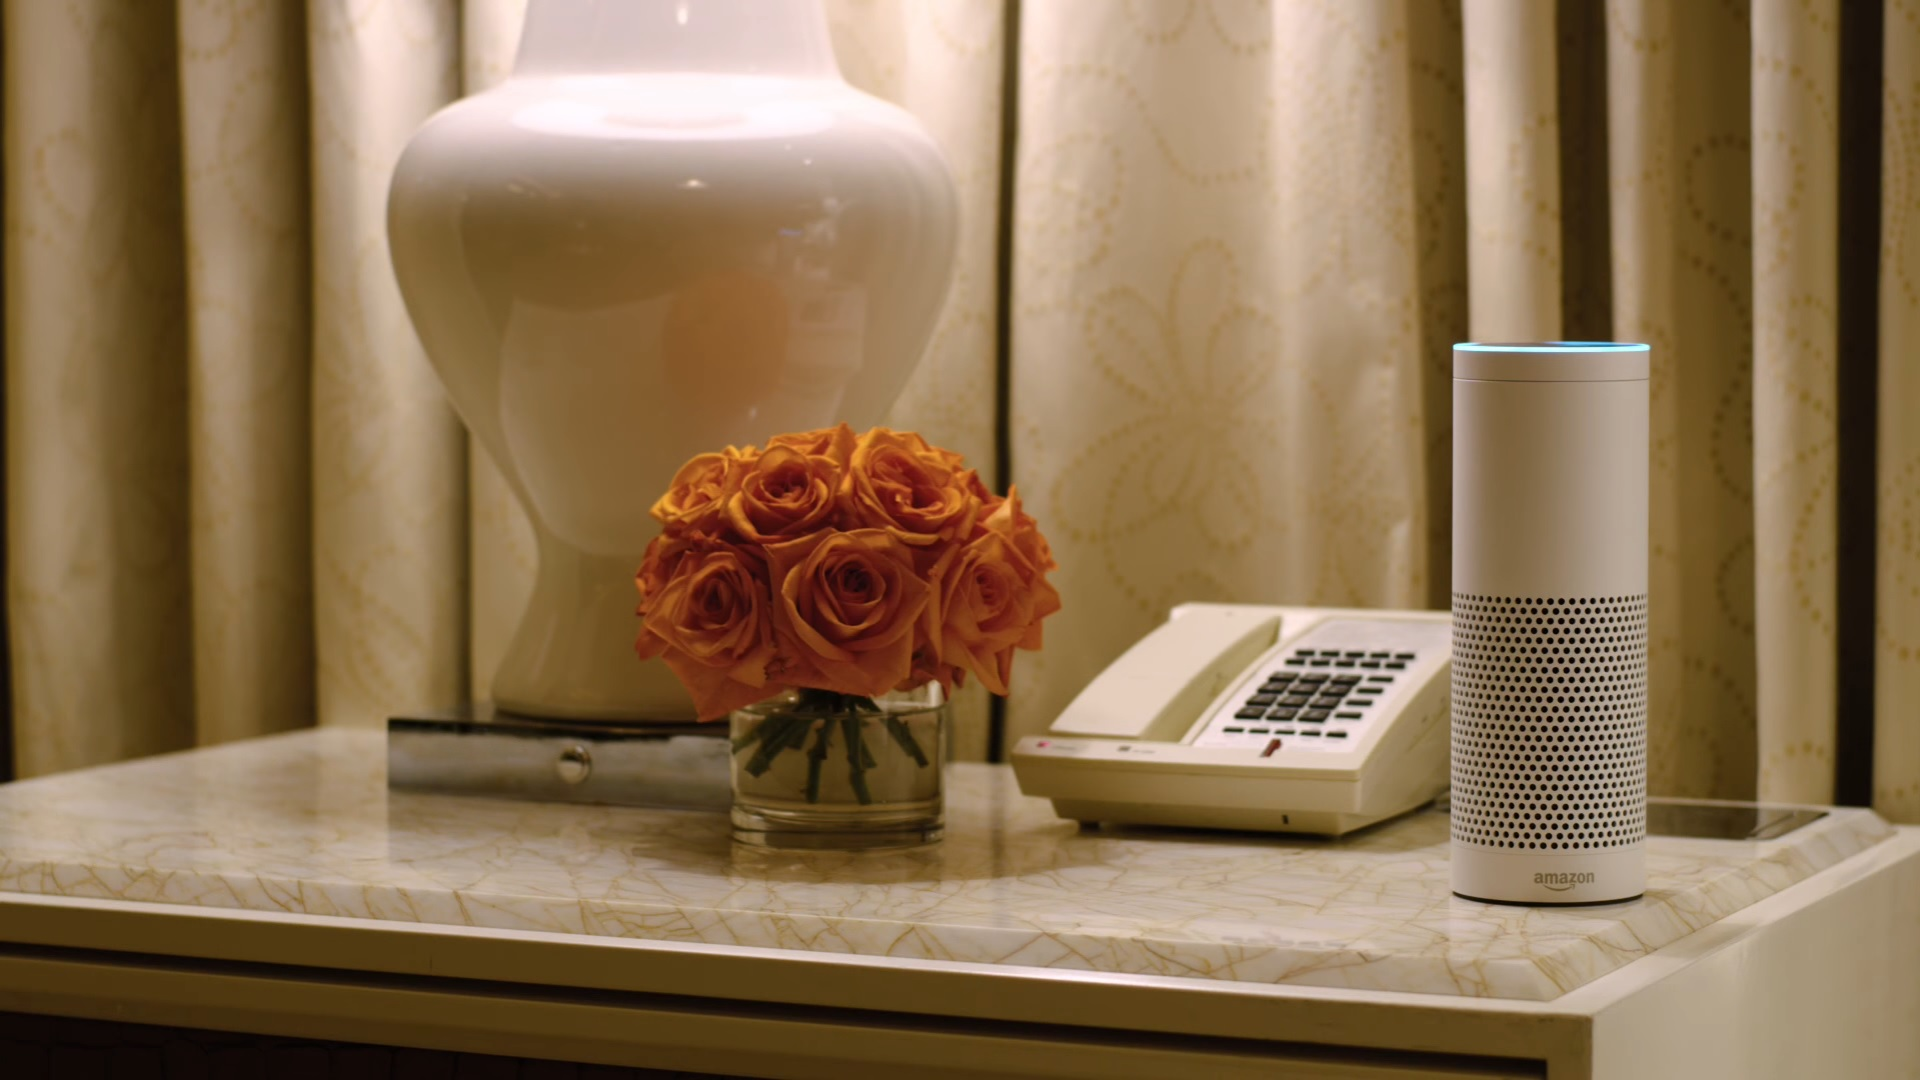 Modojo | The Wynn Las Vegas is Installing an Amazon Echo in Every Hotel Room